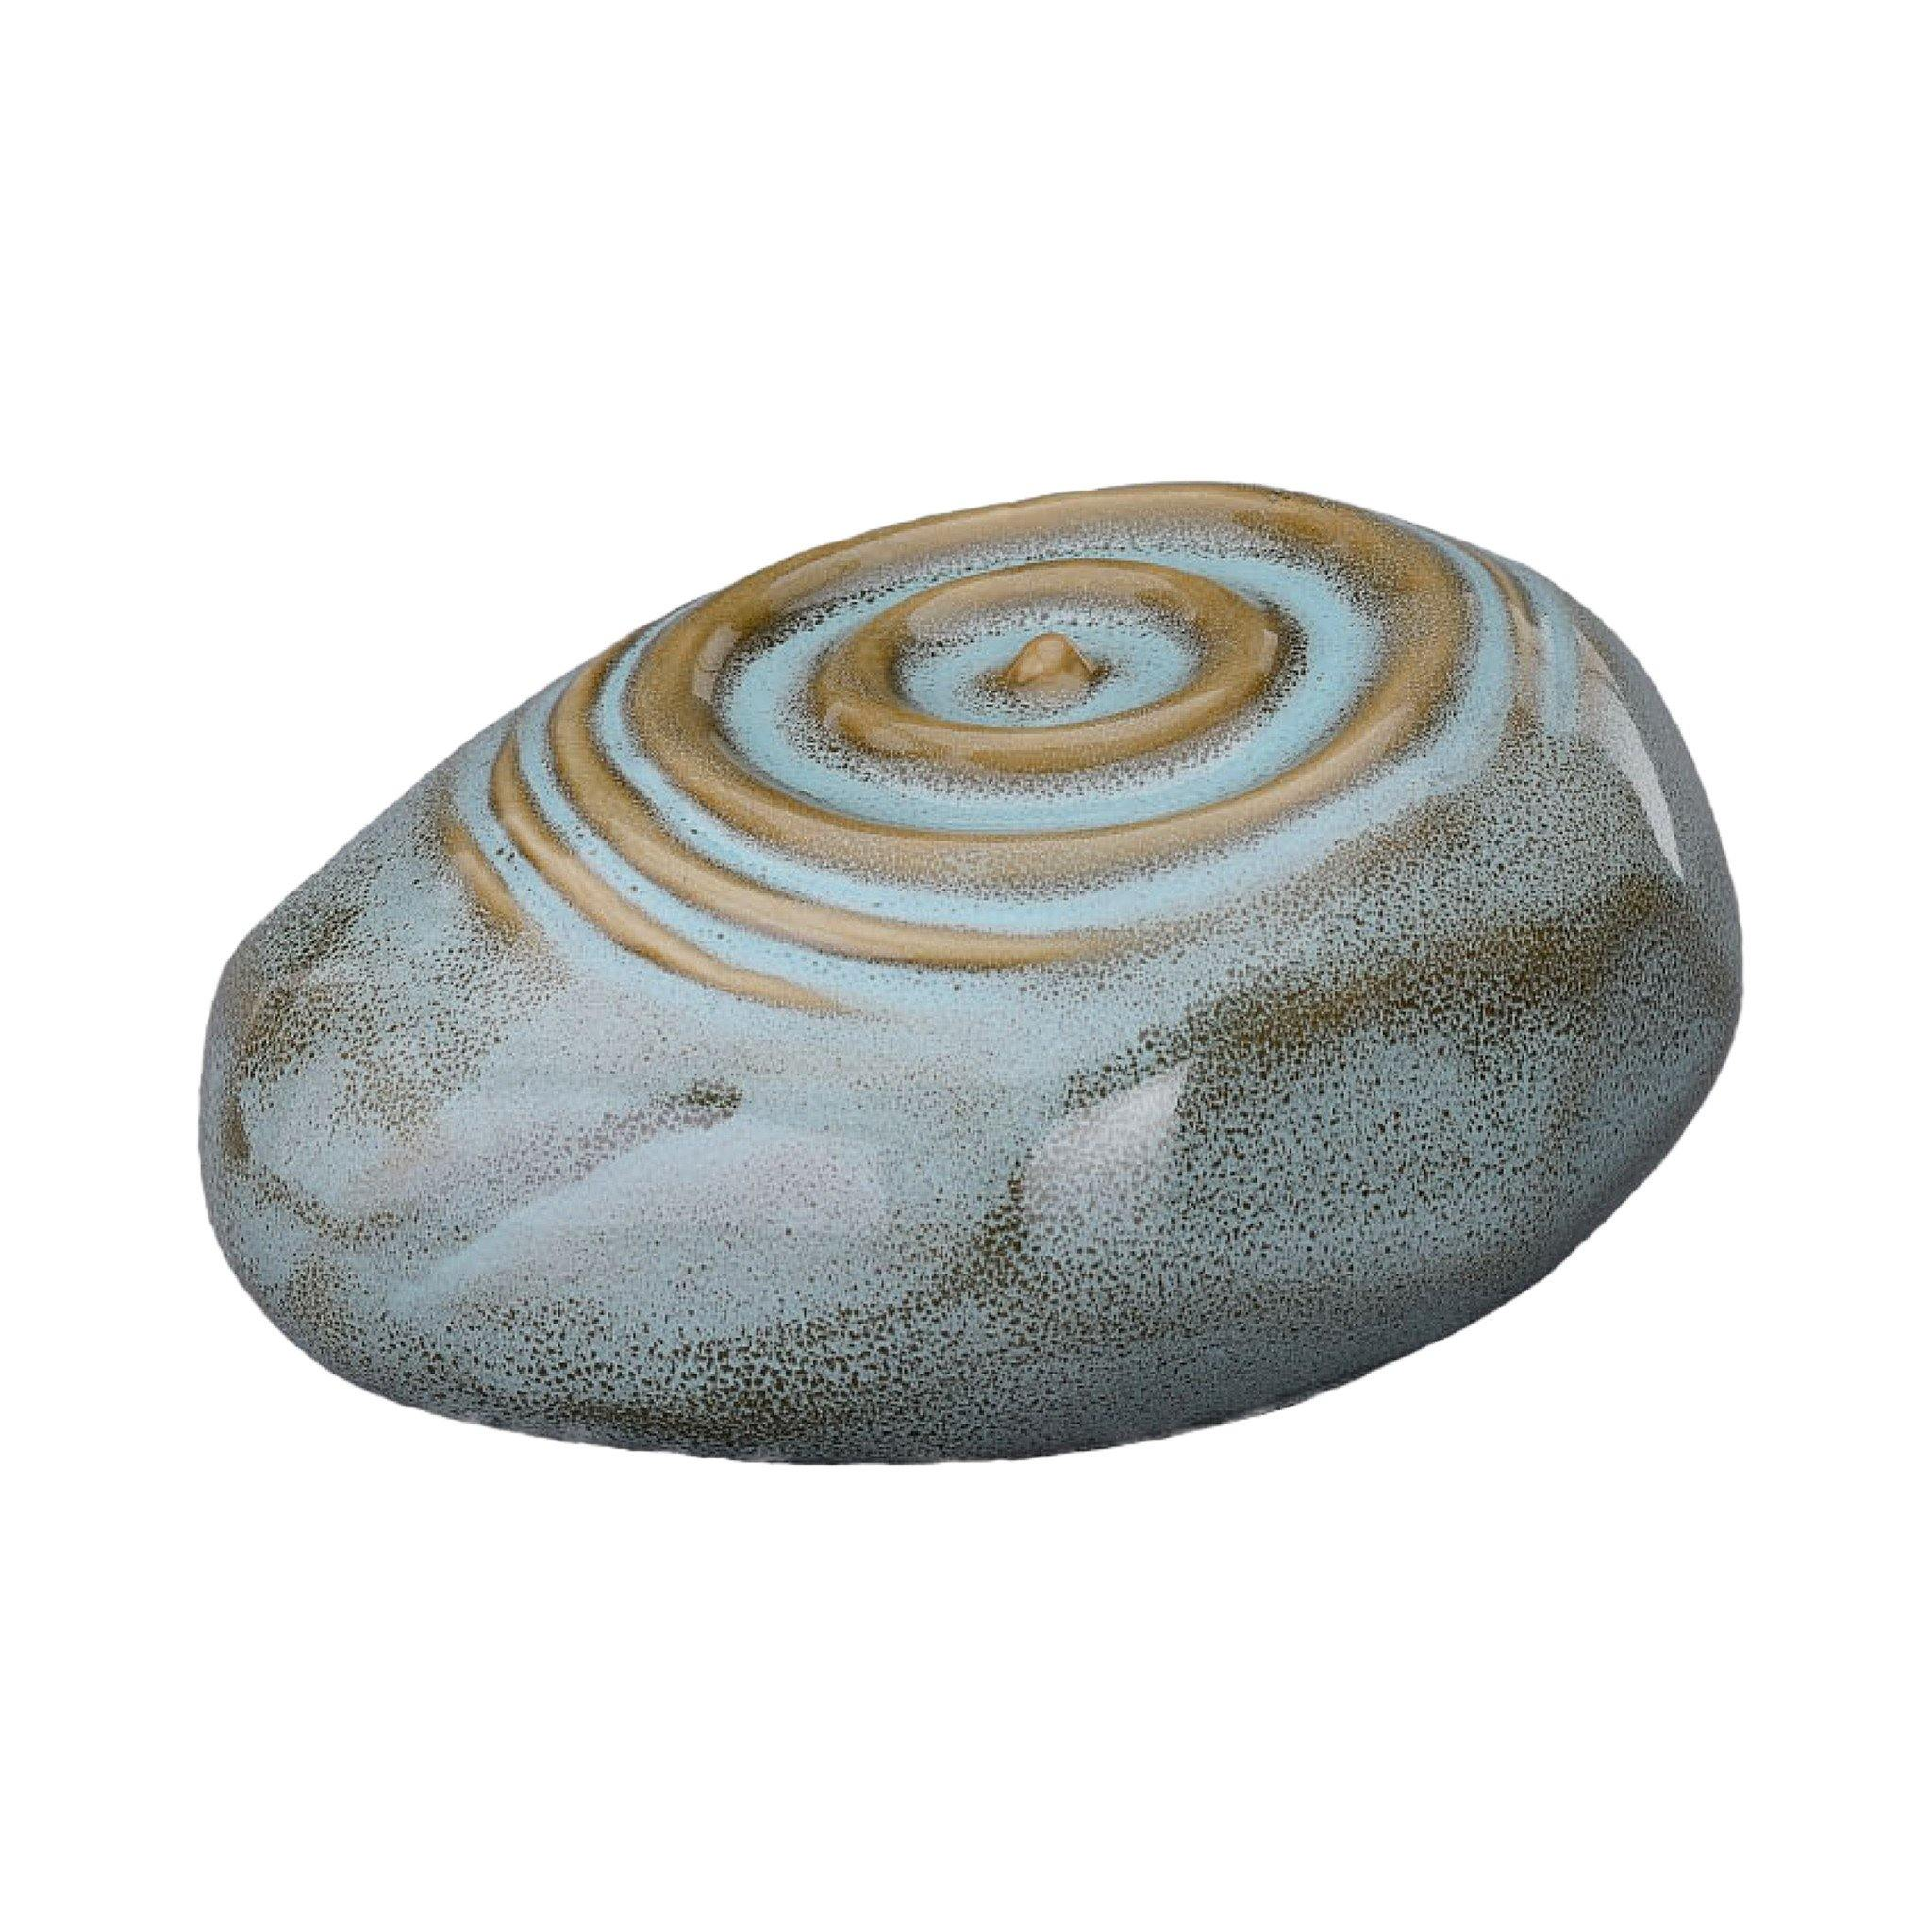 Ripples Cremation Ashes Keepsake Urn Range - Urns UK